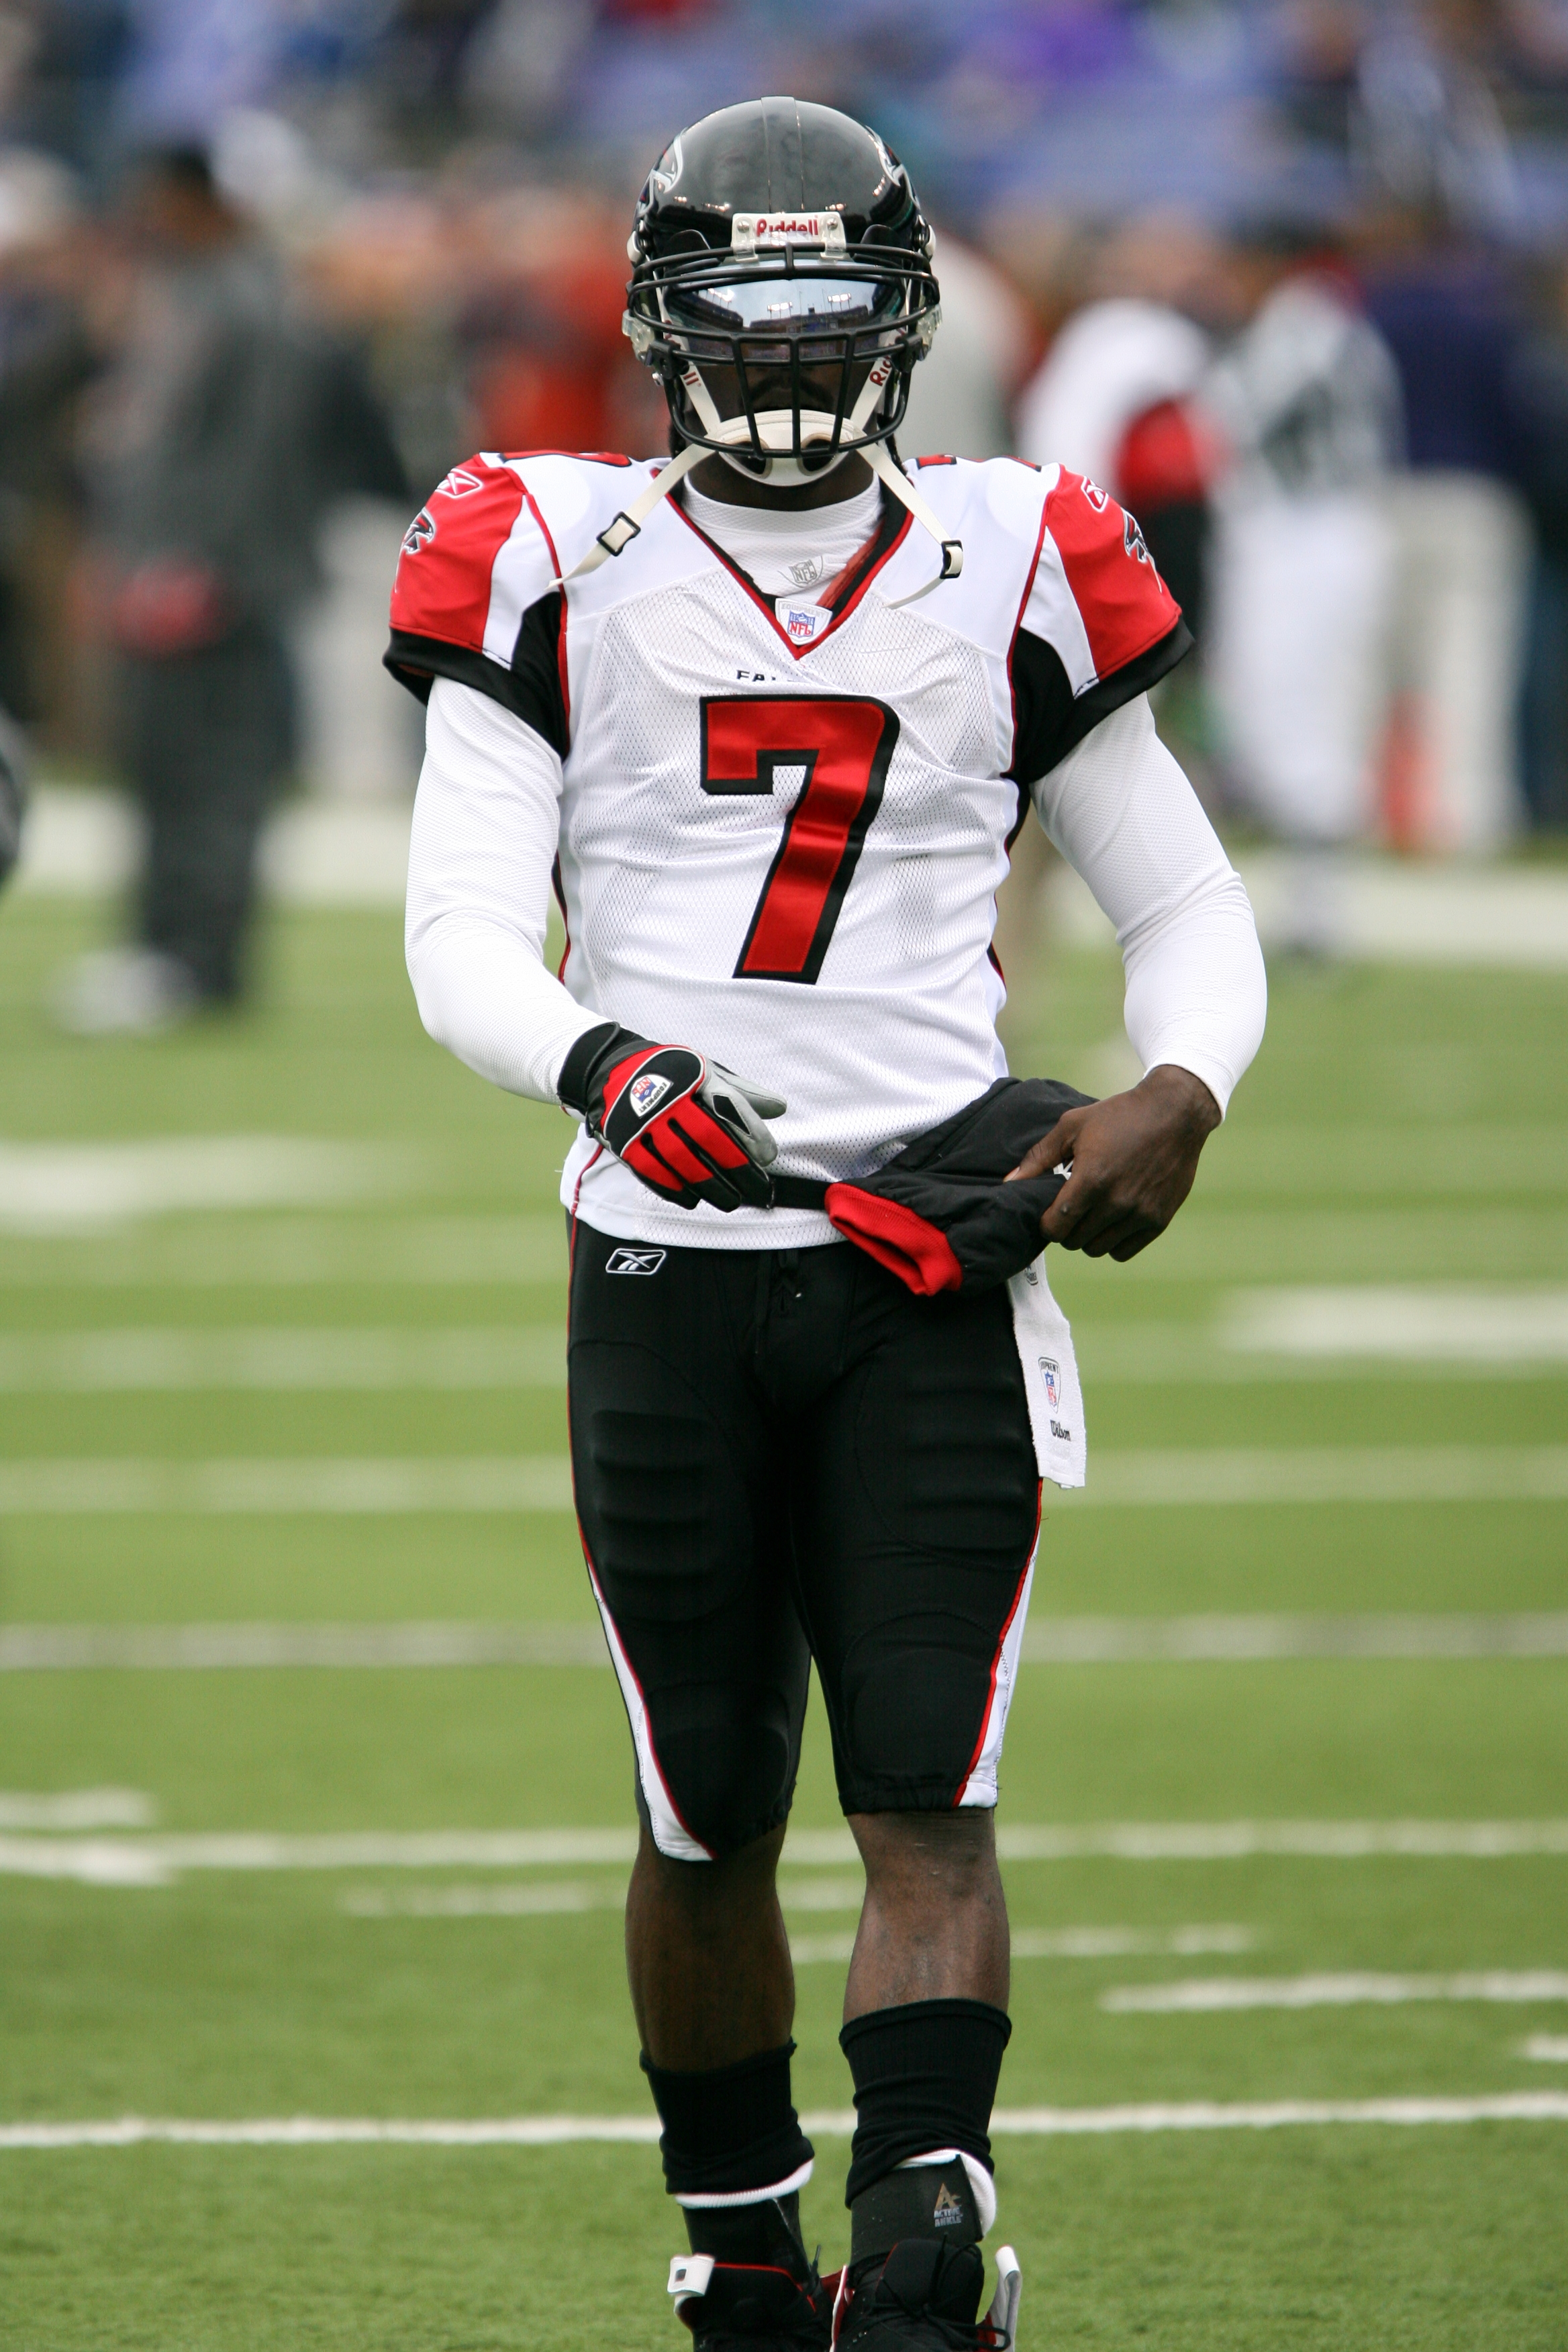 Nike NFL Mens Jerseys - Michael Vick - Wikipedia, the free encyclopedia